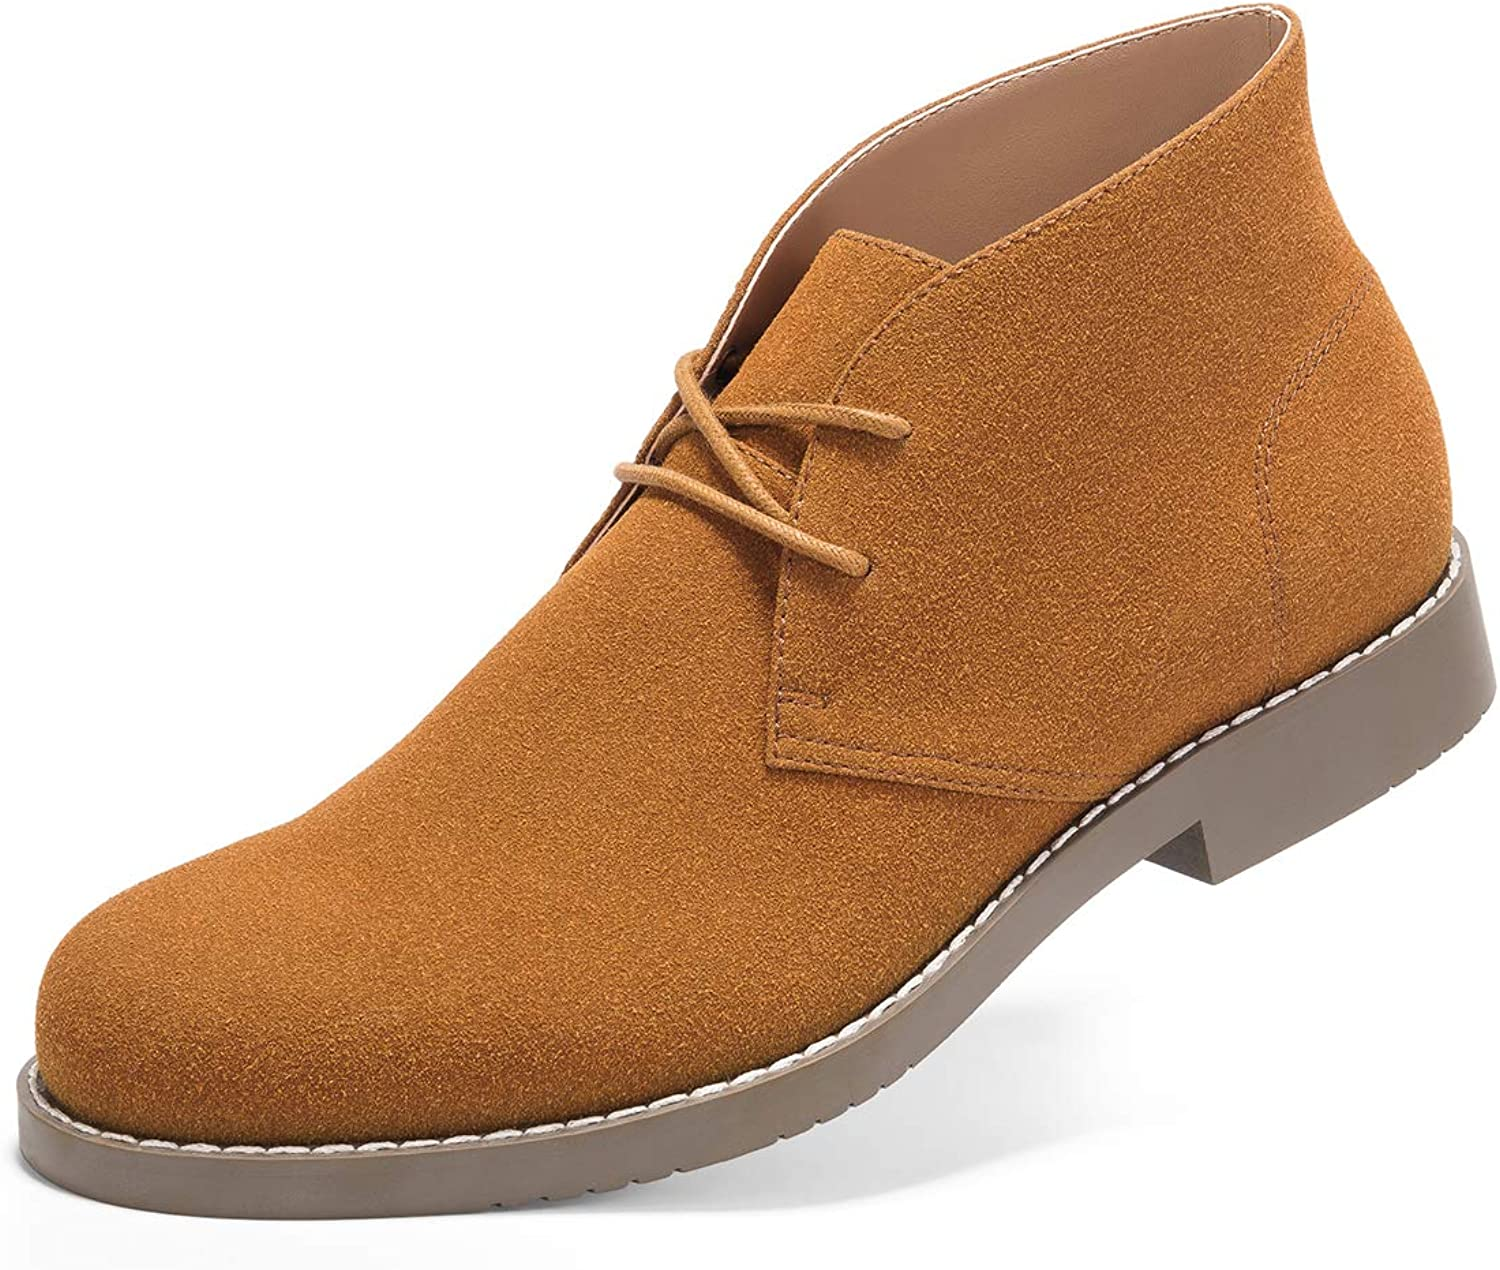 GM GOLAIMAN Suede Chukka Boots for Men-Lace Up Desert Boots Ankle Casual Boots Stylish Street Walking shoes Brown 7.5